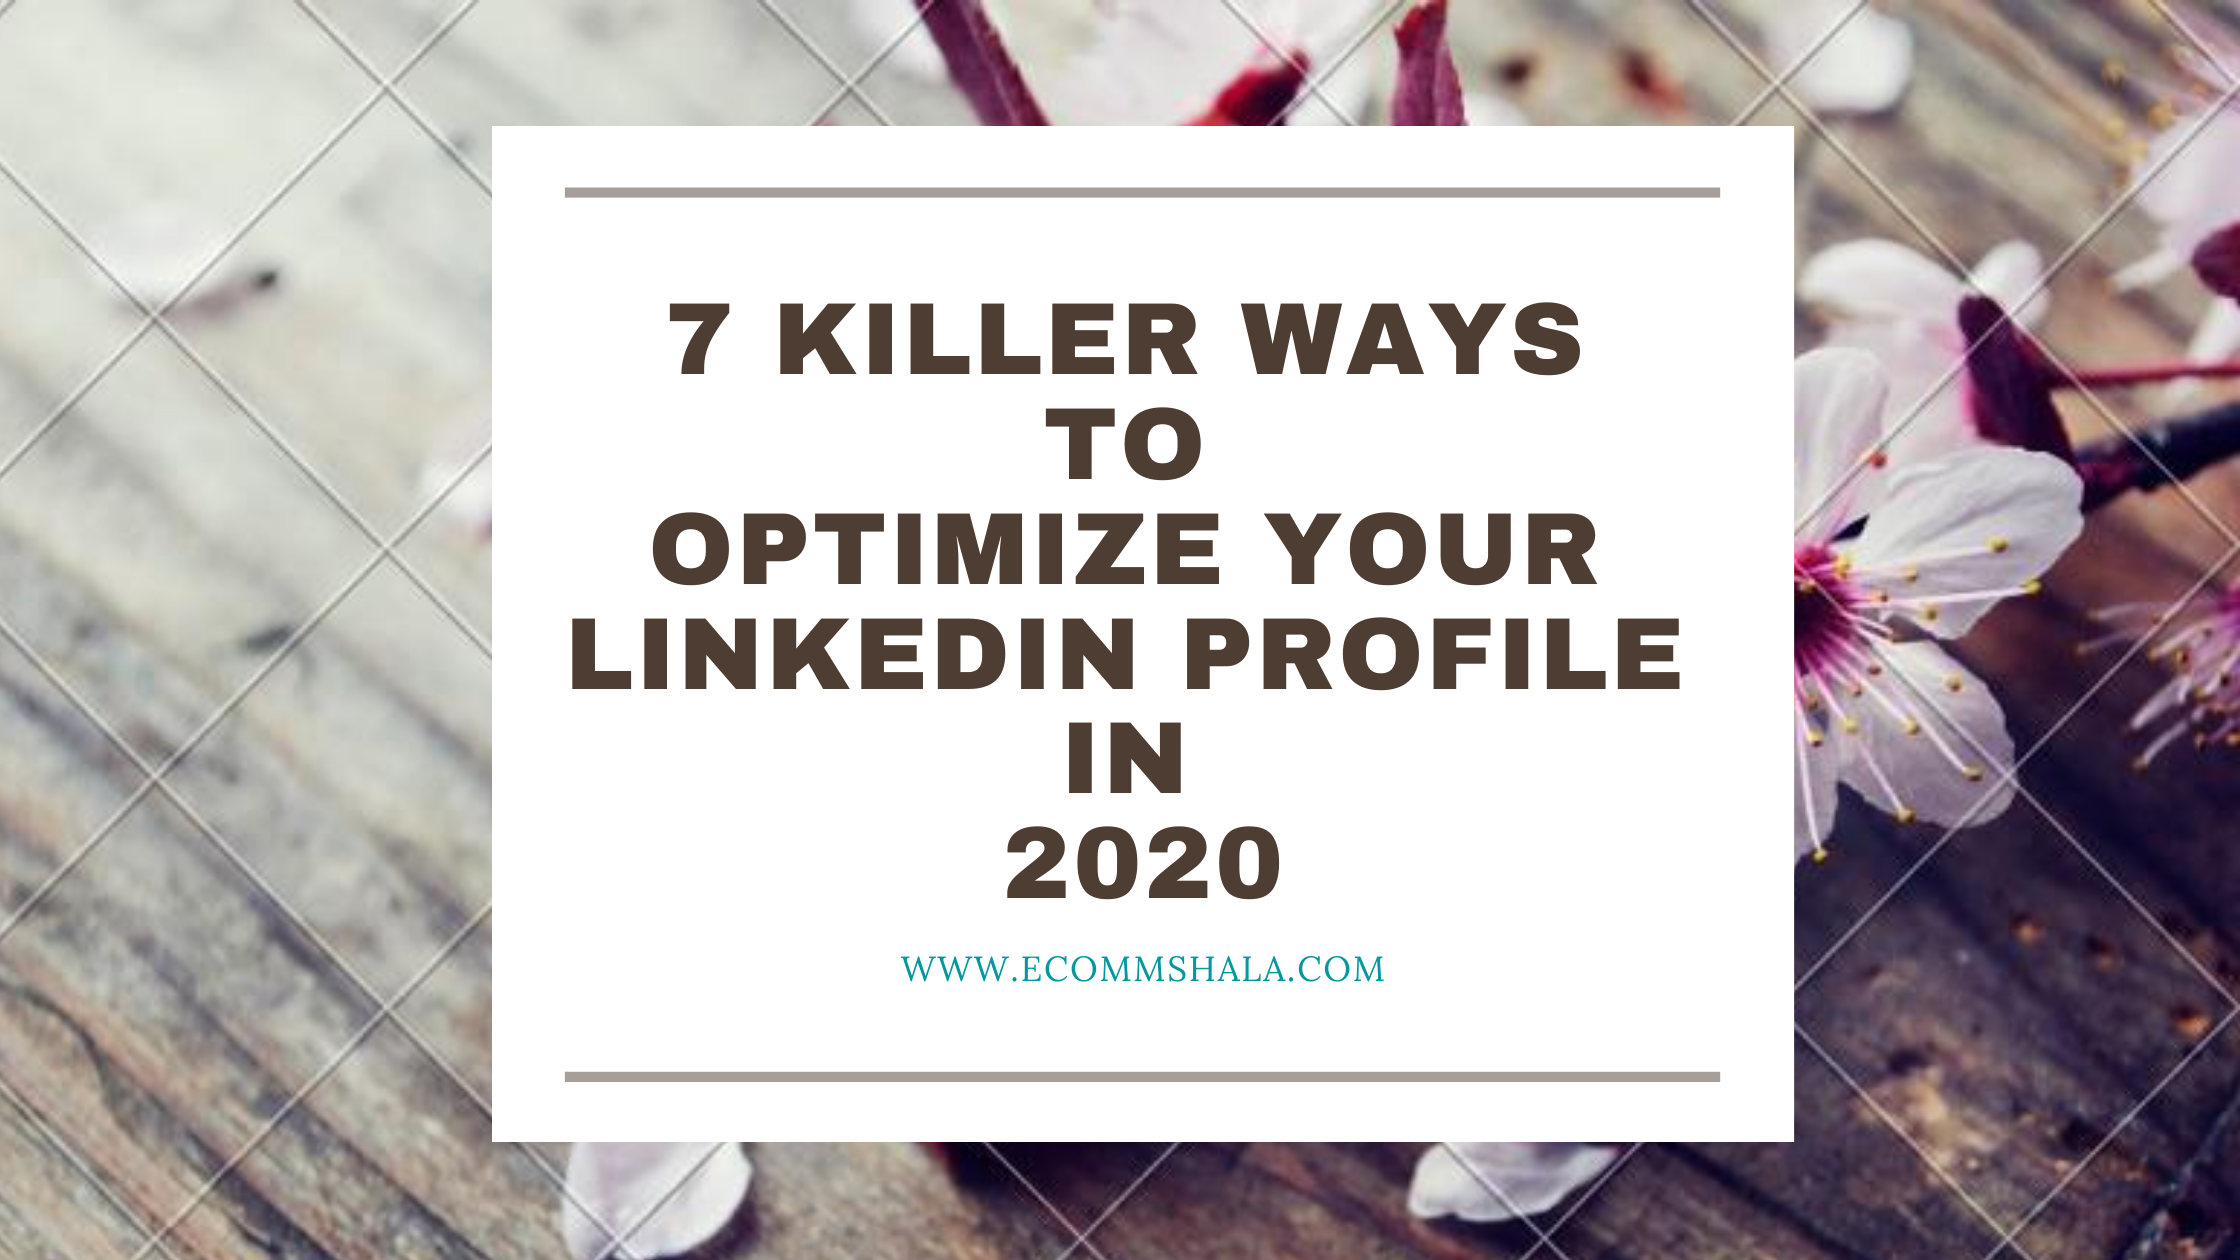 7 Killer Ways to Optimize Your Linkedin Profile in 2020